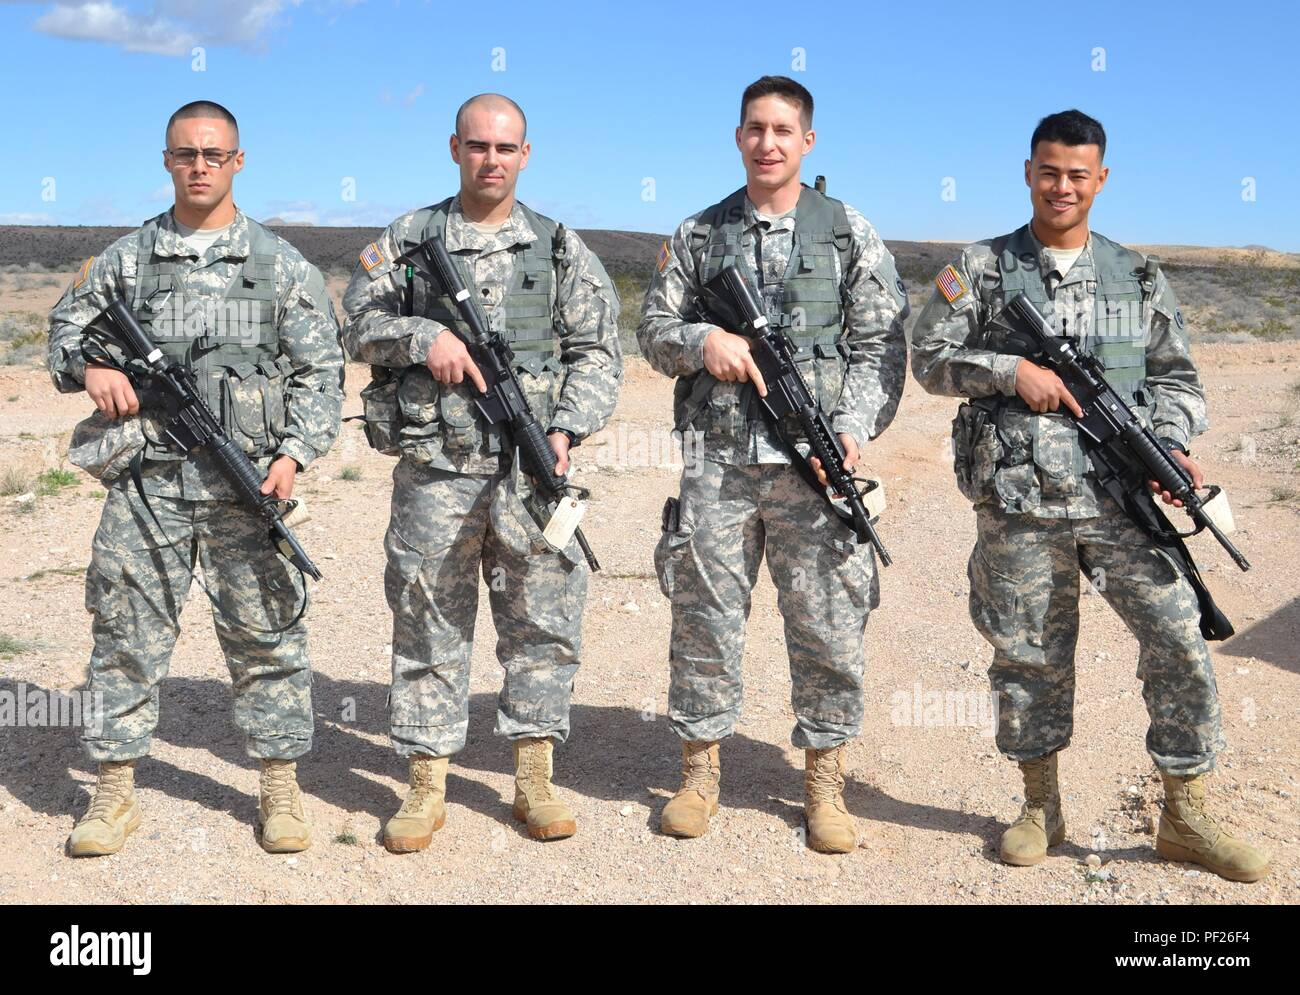 Sgt Edgar Macias And Spc Fakhimi 227th Transportation Company Sgt Scott Hart 483rd Transportation Battalion And Spc Kenny Ochoa 481st Tc Competed In The 650th Regional Support Group Best Warrior Competition At